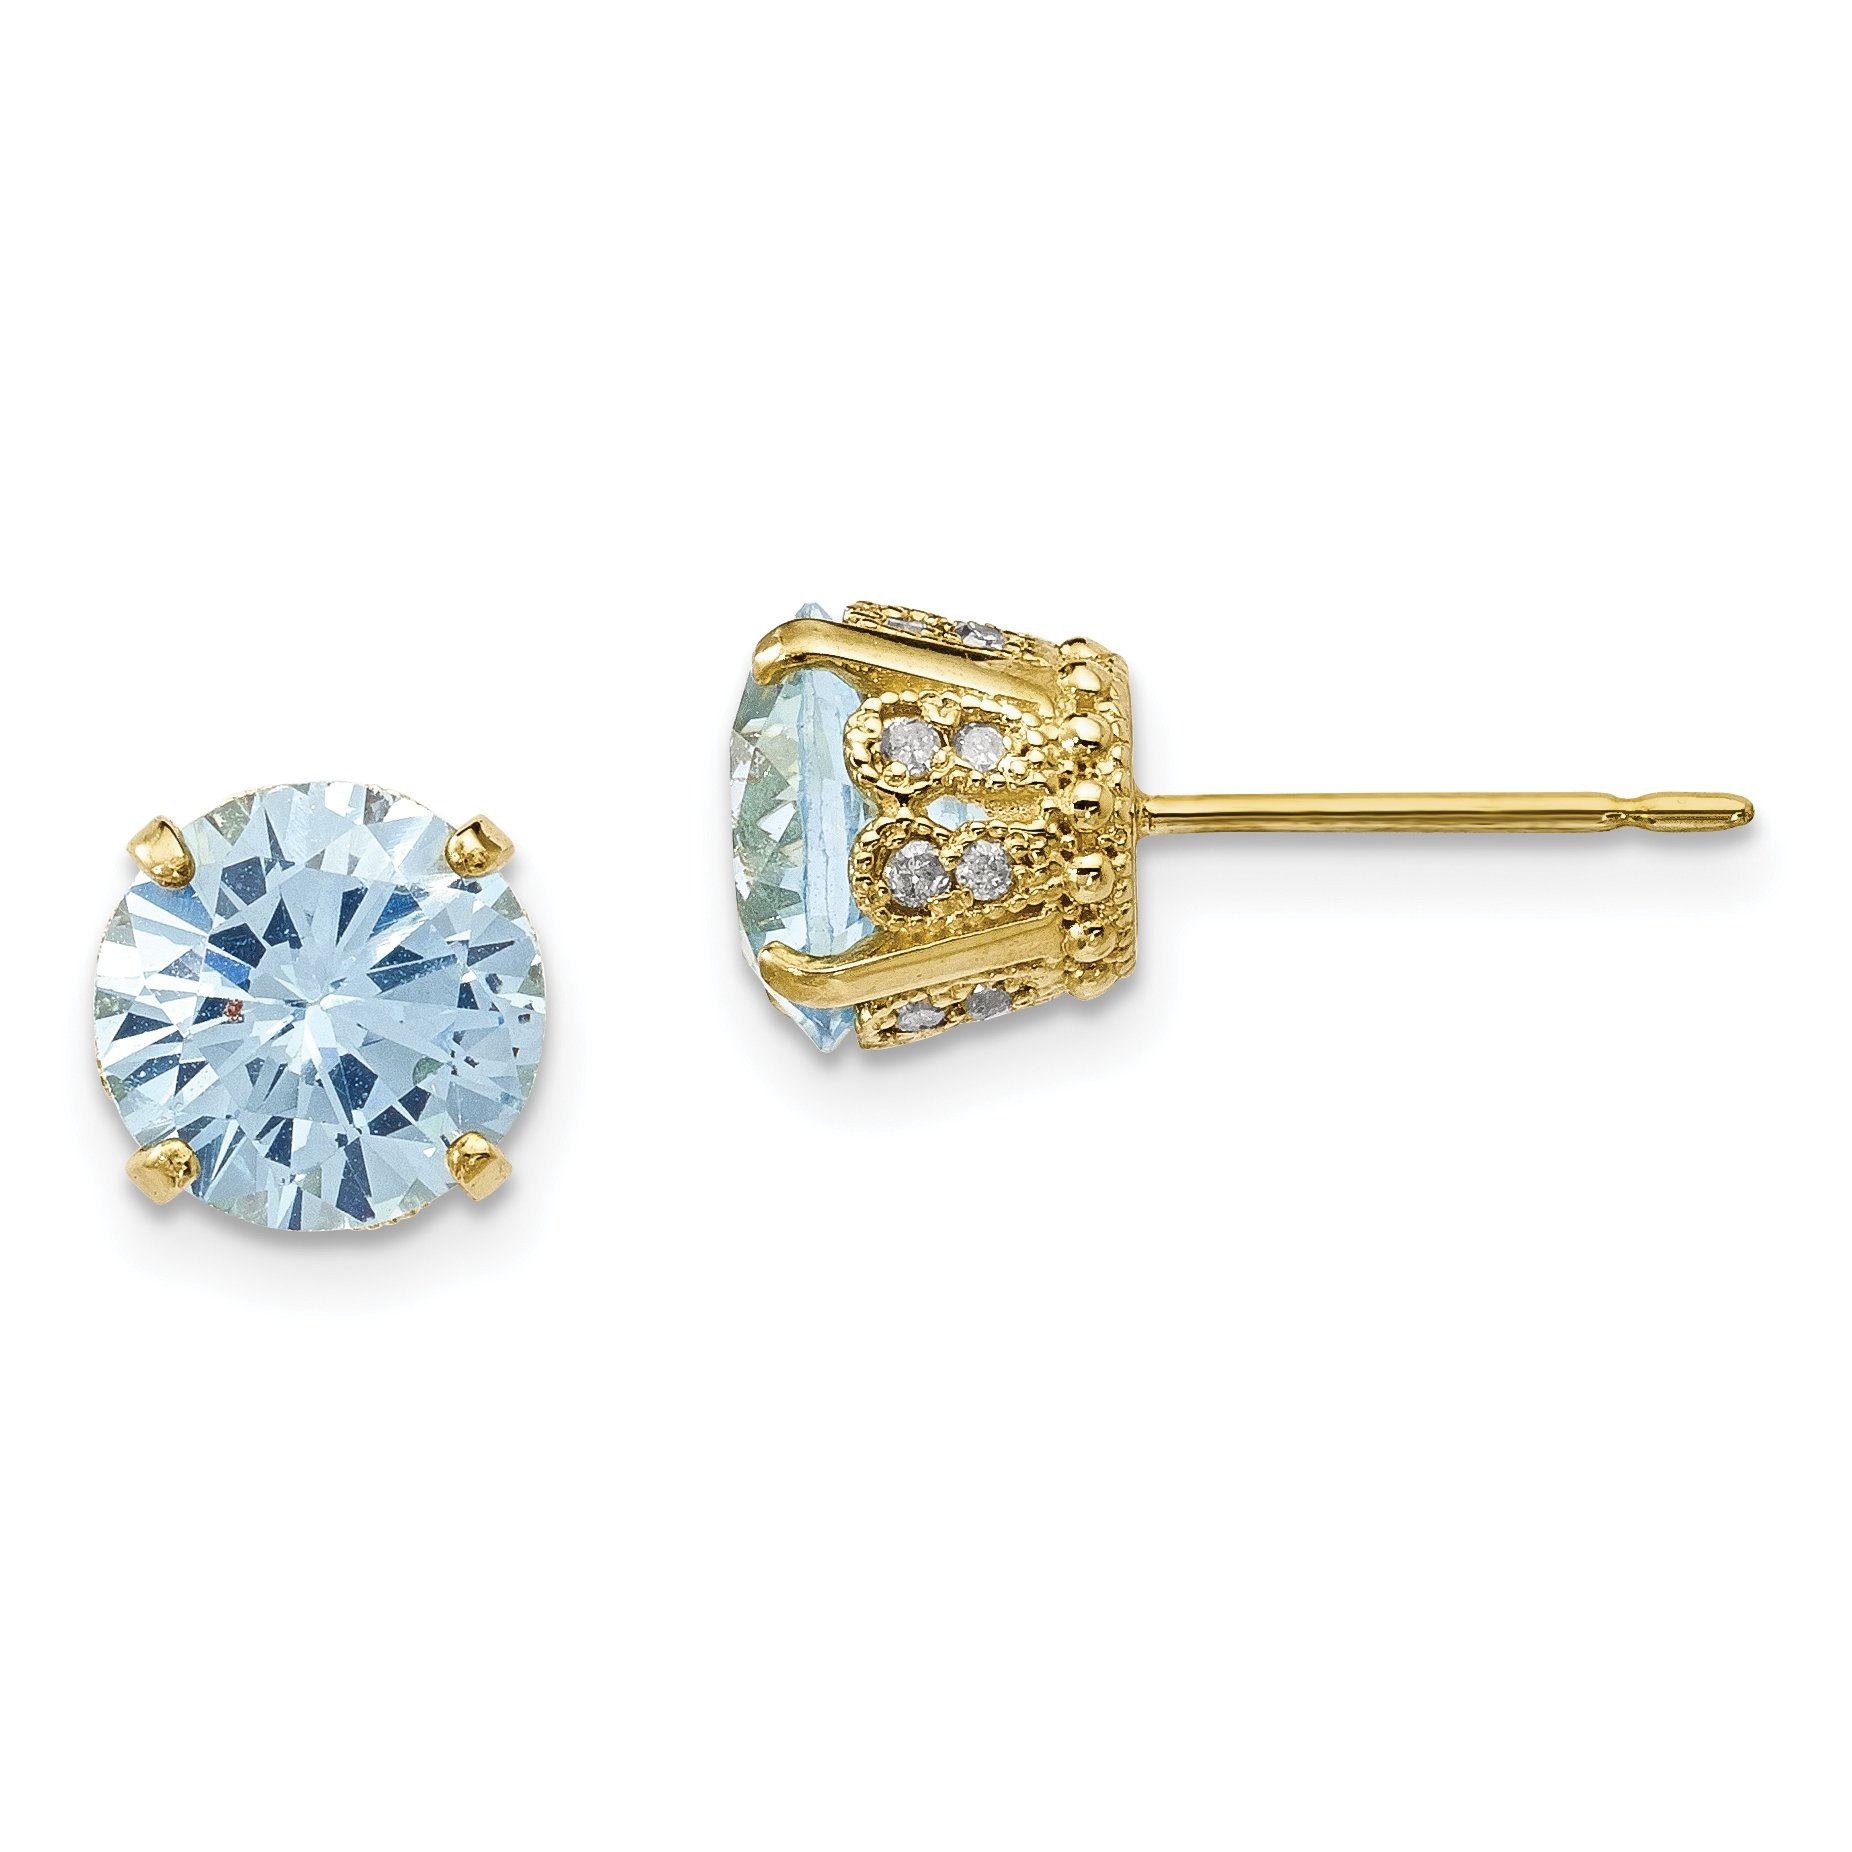 ICE CARATS 10k Yellow Gold Tiara Collection Diamond Lab Created Blue Aquamarine Post Stud Ball Button Earrings Set Birthstone Yc Fine Jewelry Gift Set For Women Heart